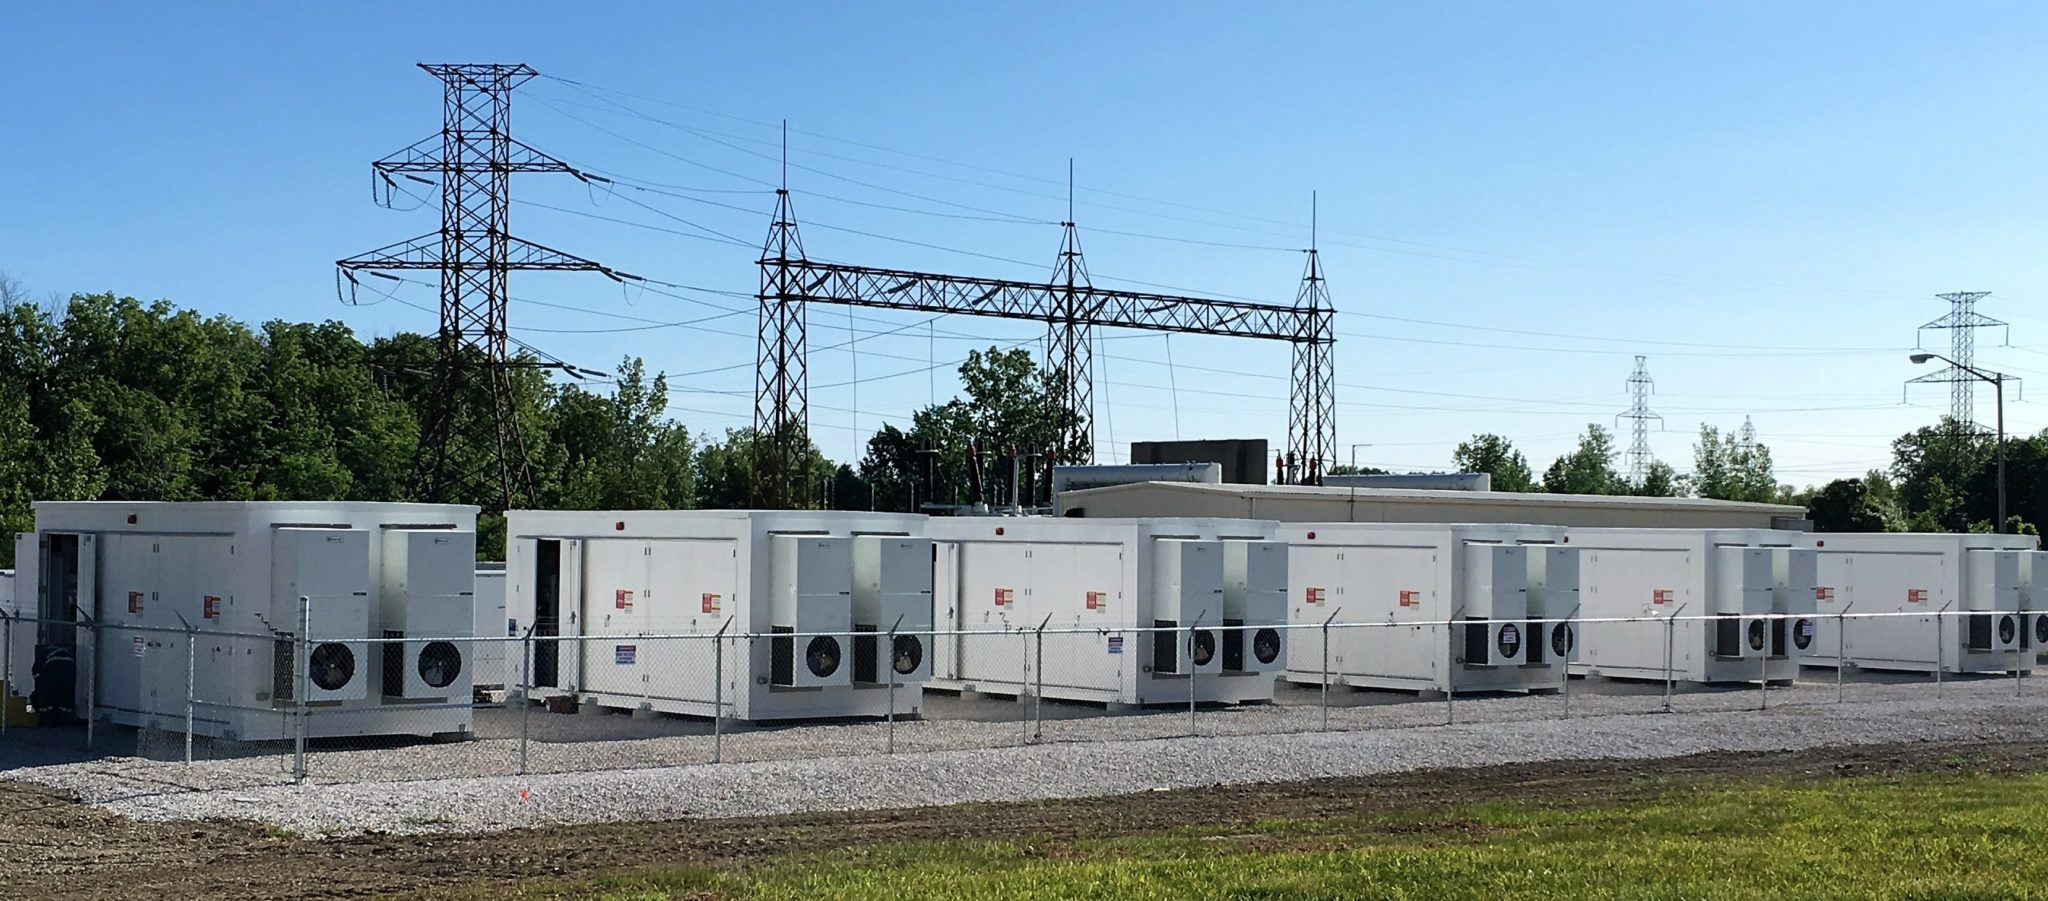 (new york, ny) august 15, 2018 – convergent energy + power (convergent),  the leading independent developer of energy storage solutions in north  america,